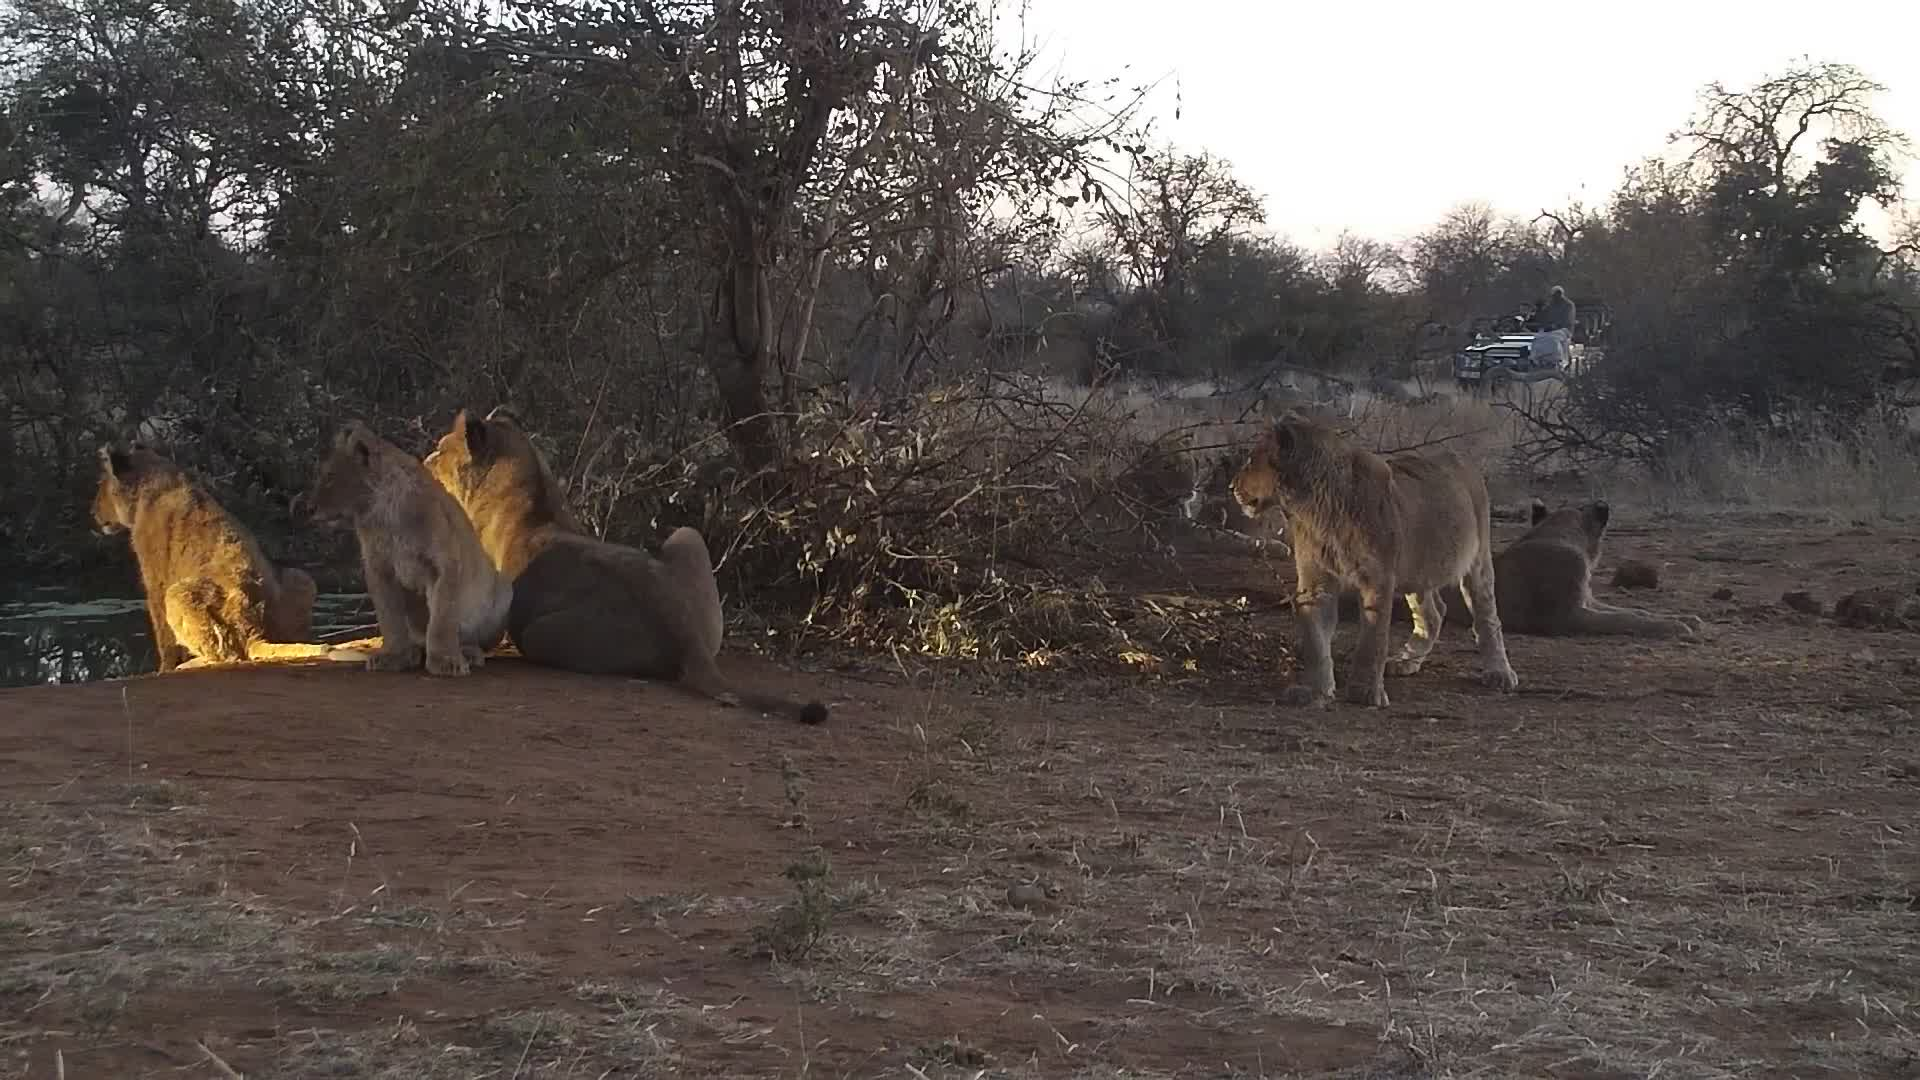 VIDEO: Lion pride at the waterhole with young